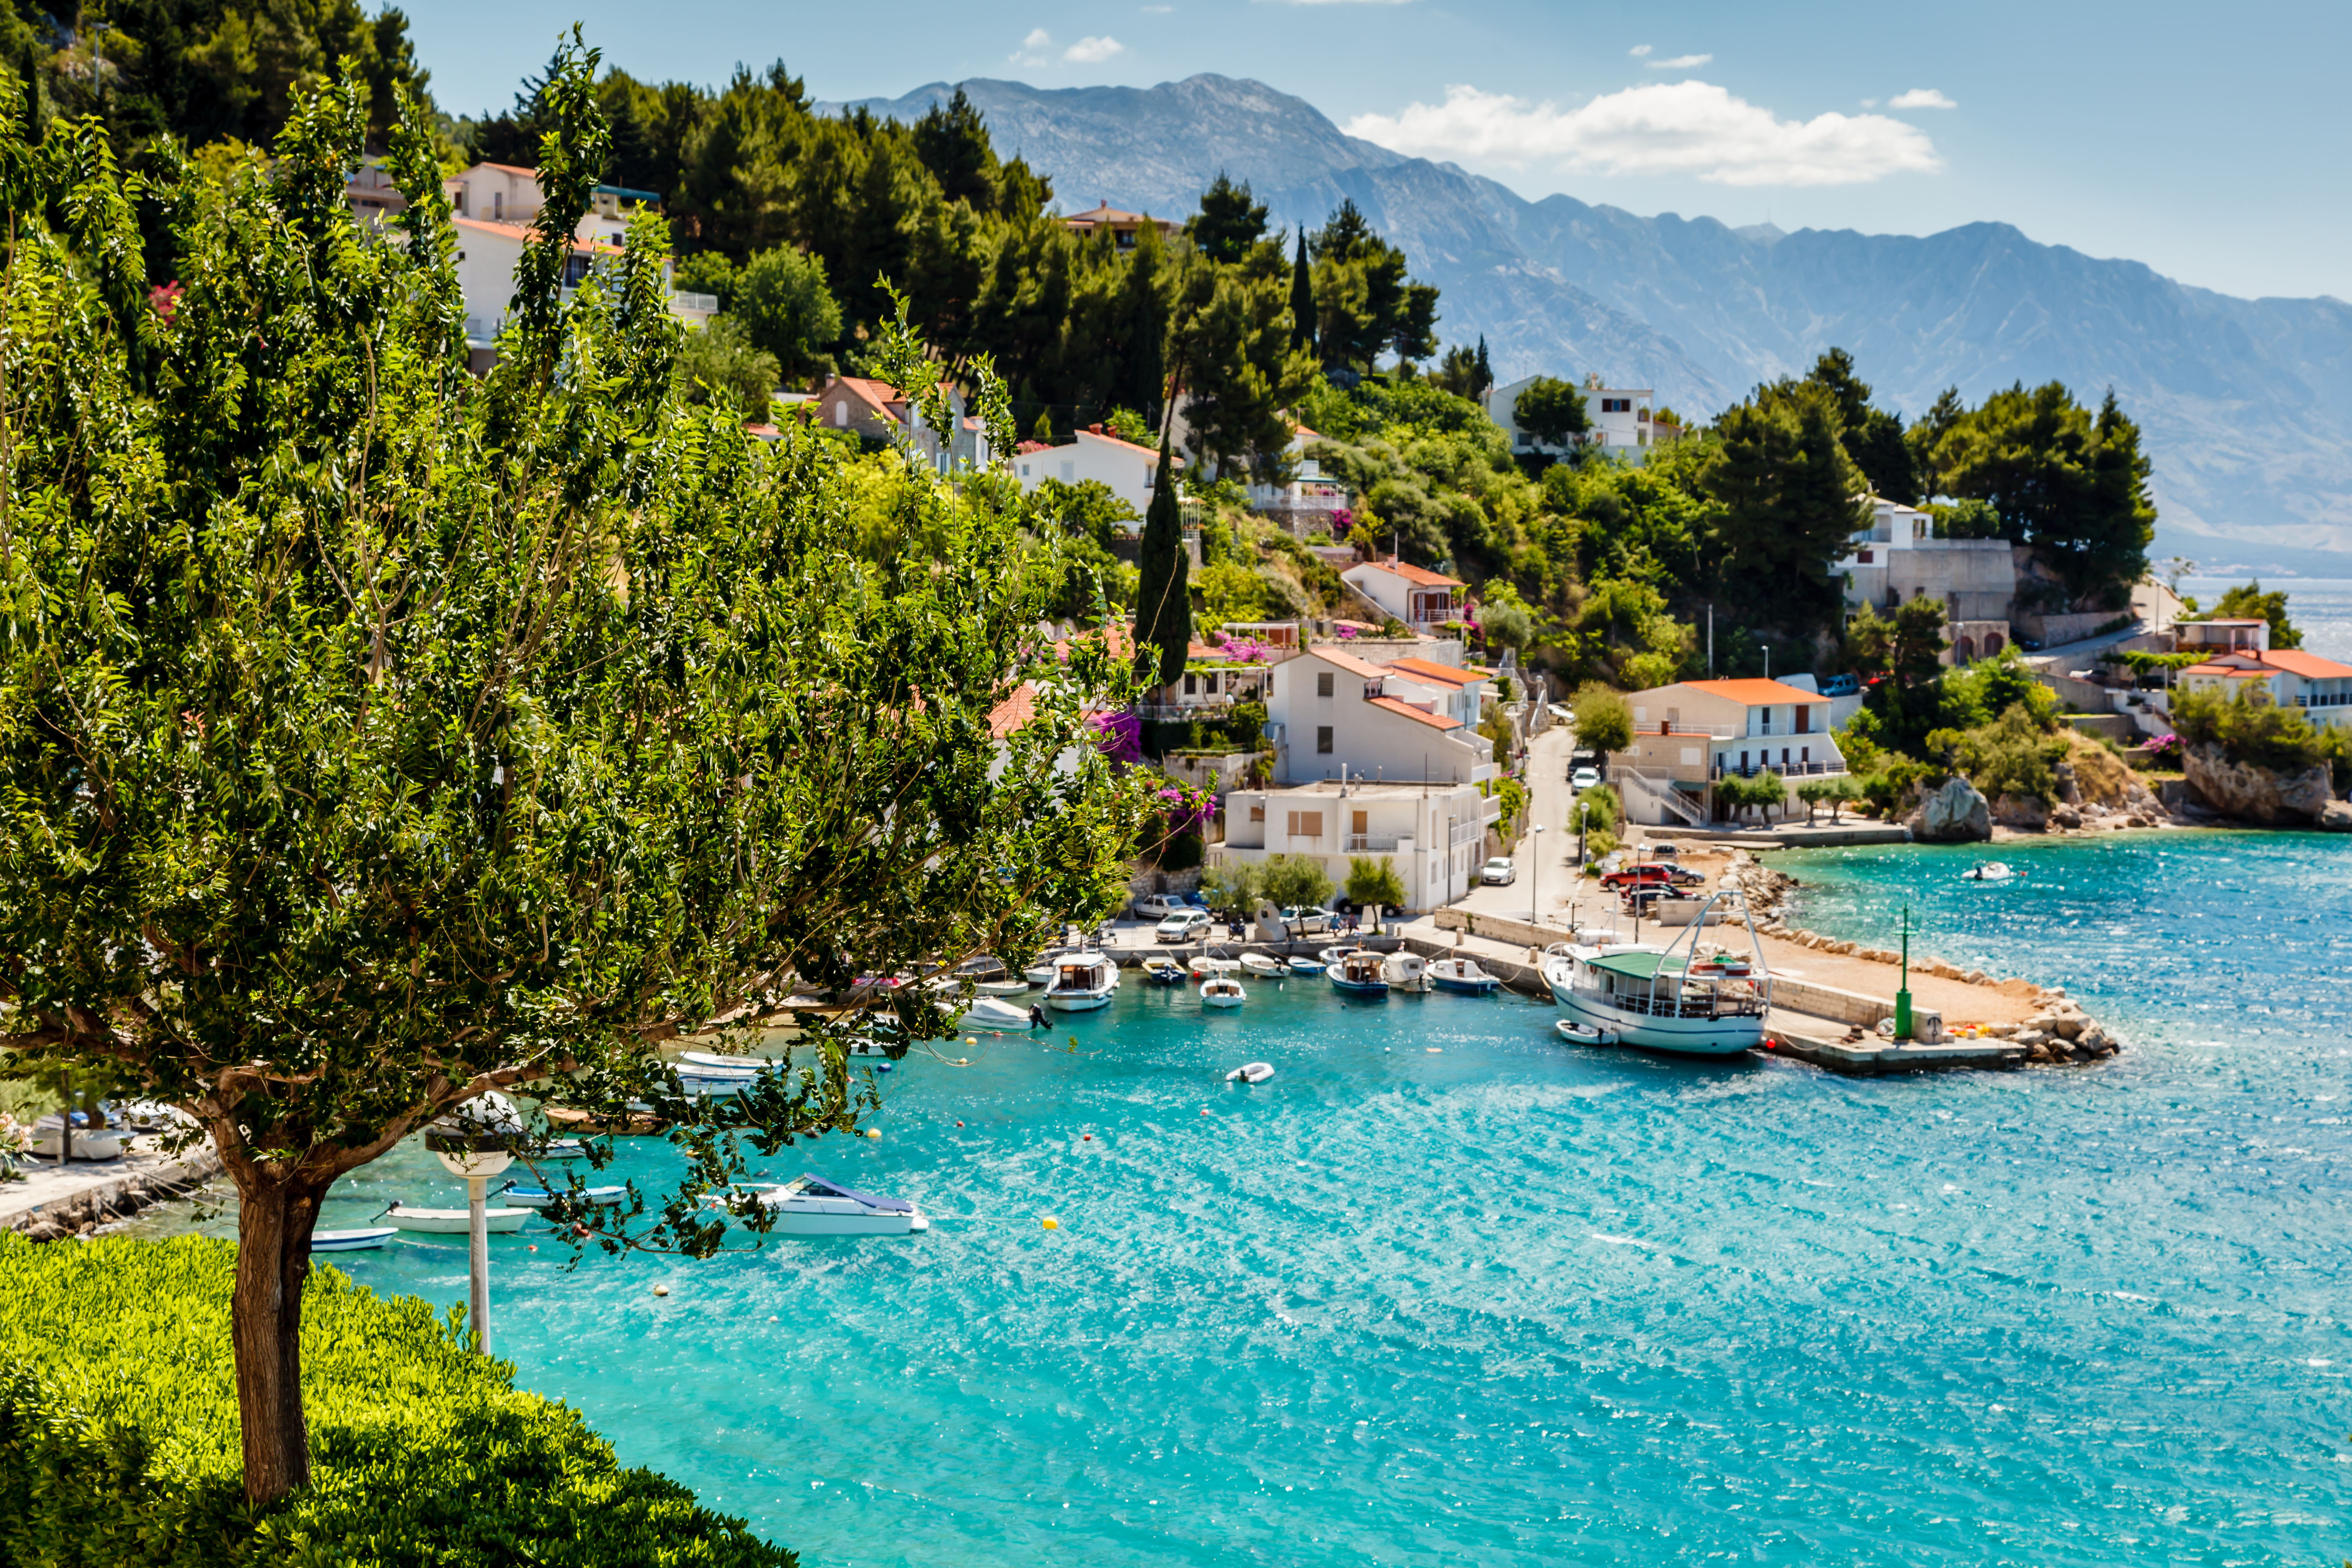 Idyllic scenery for a low-cost summer holiday in Croatia